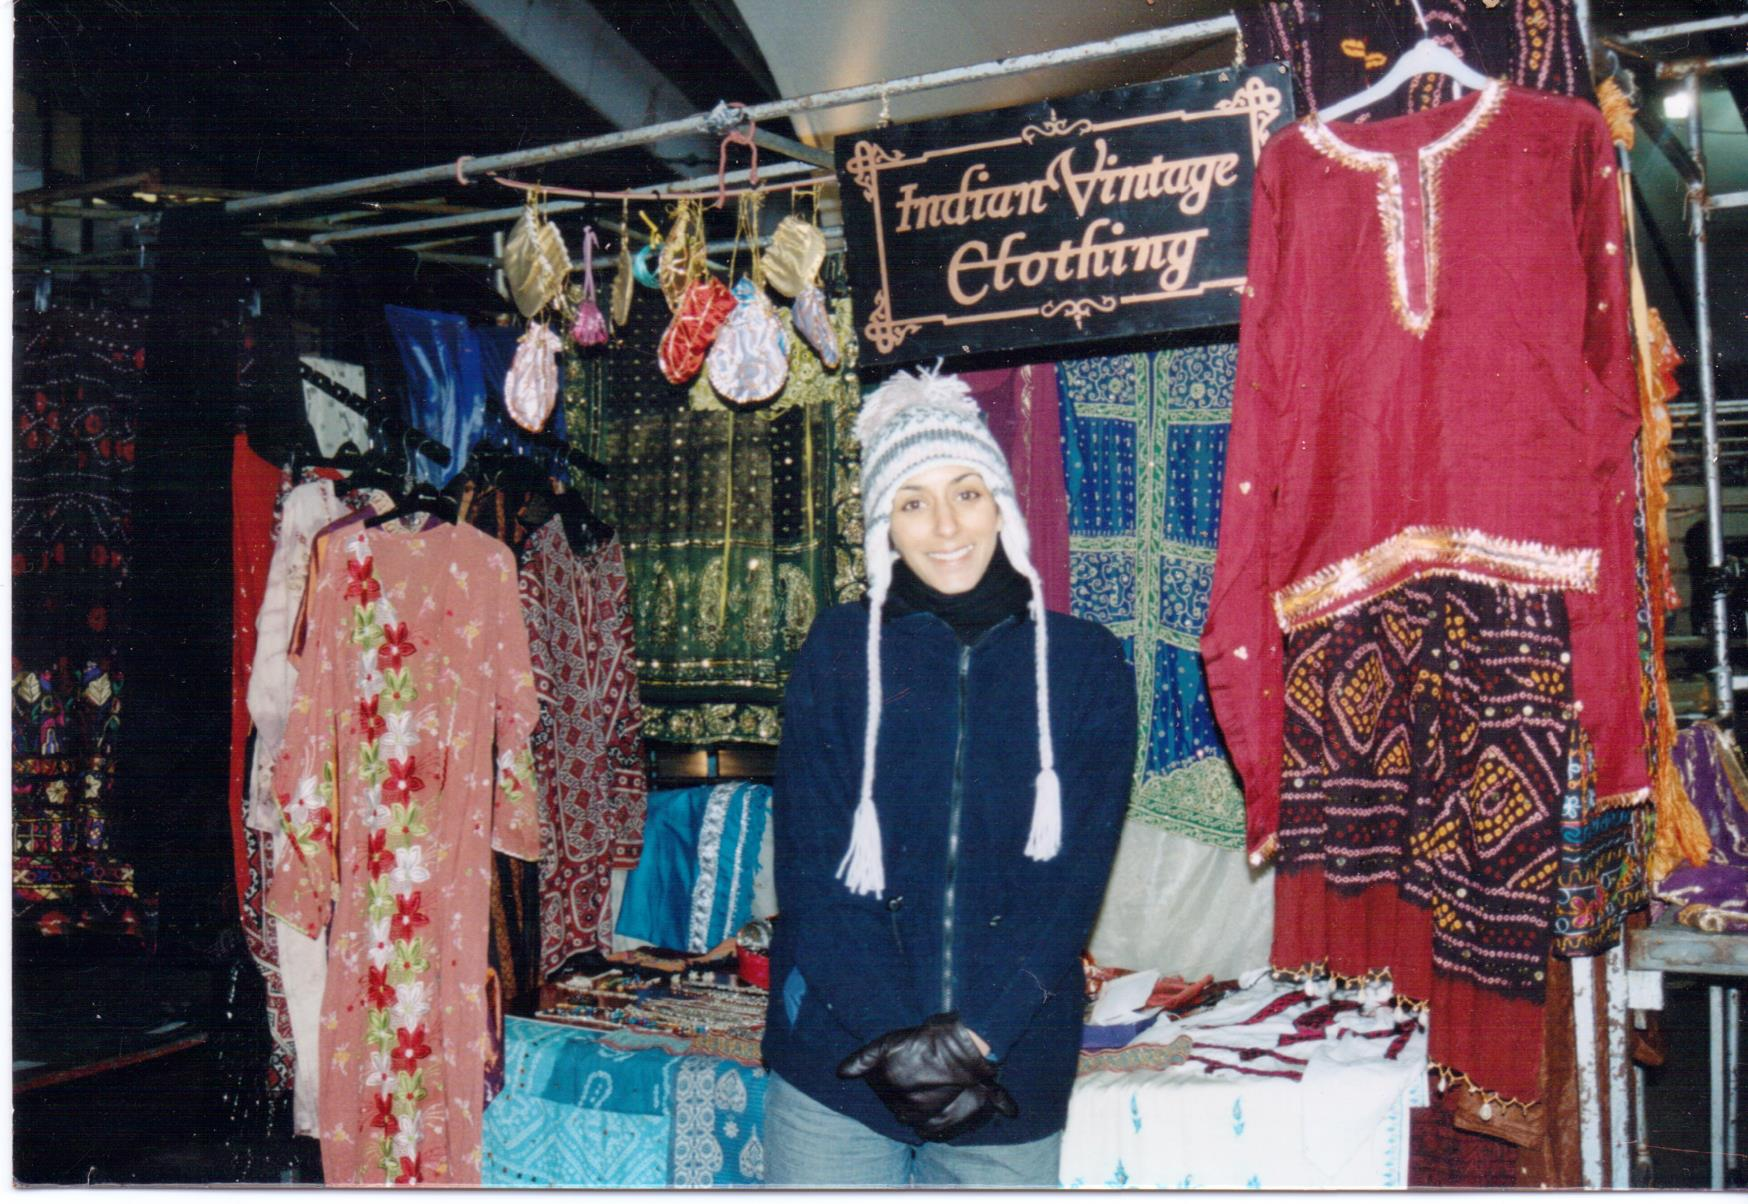 Naj Indian Vintage market stall